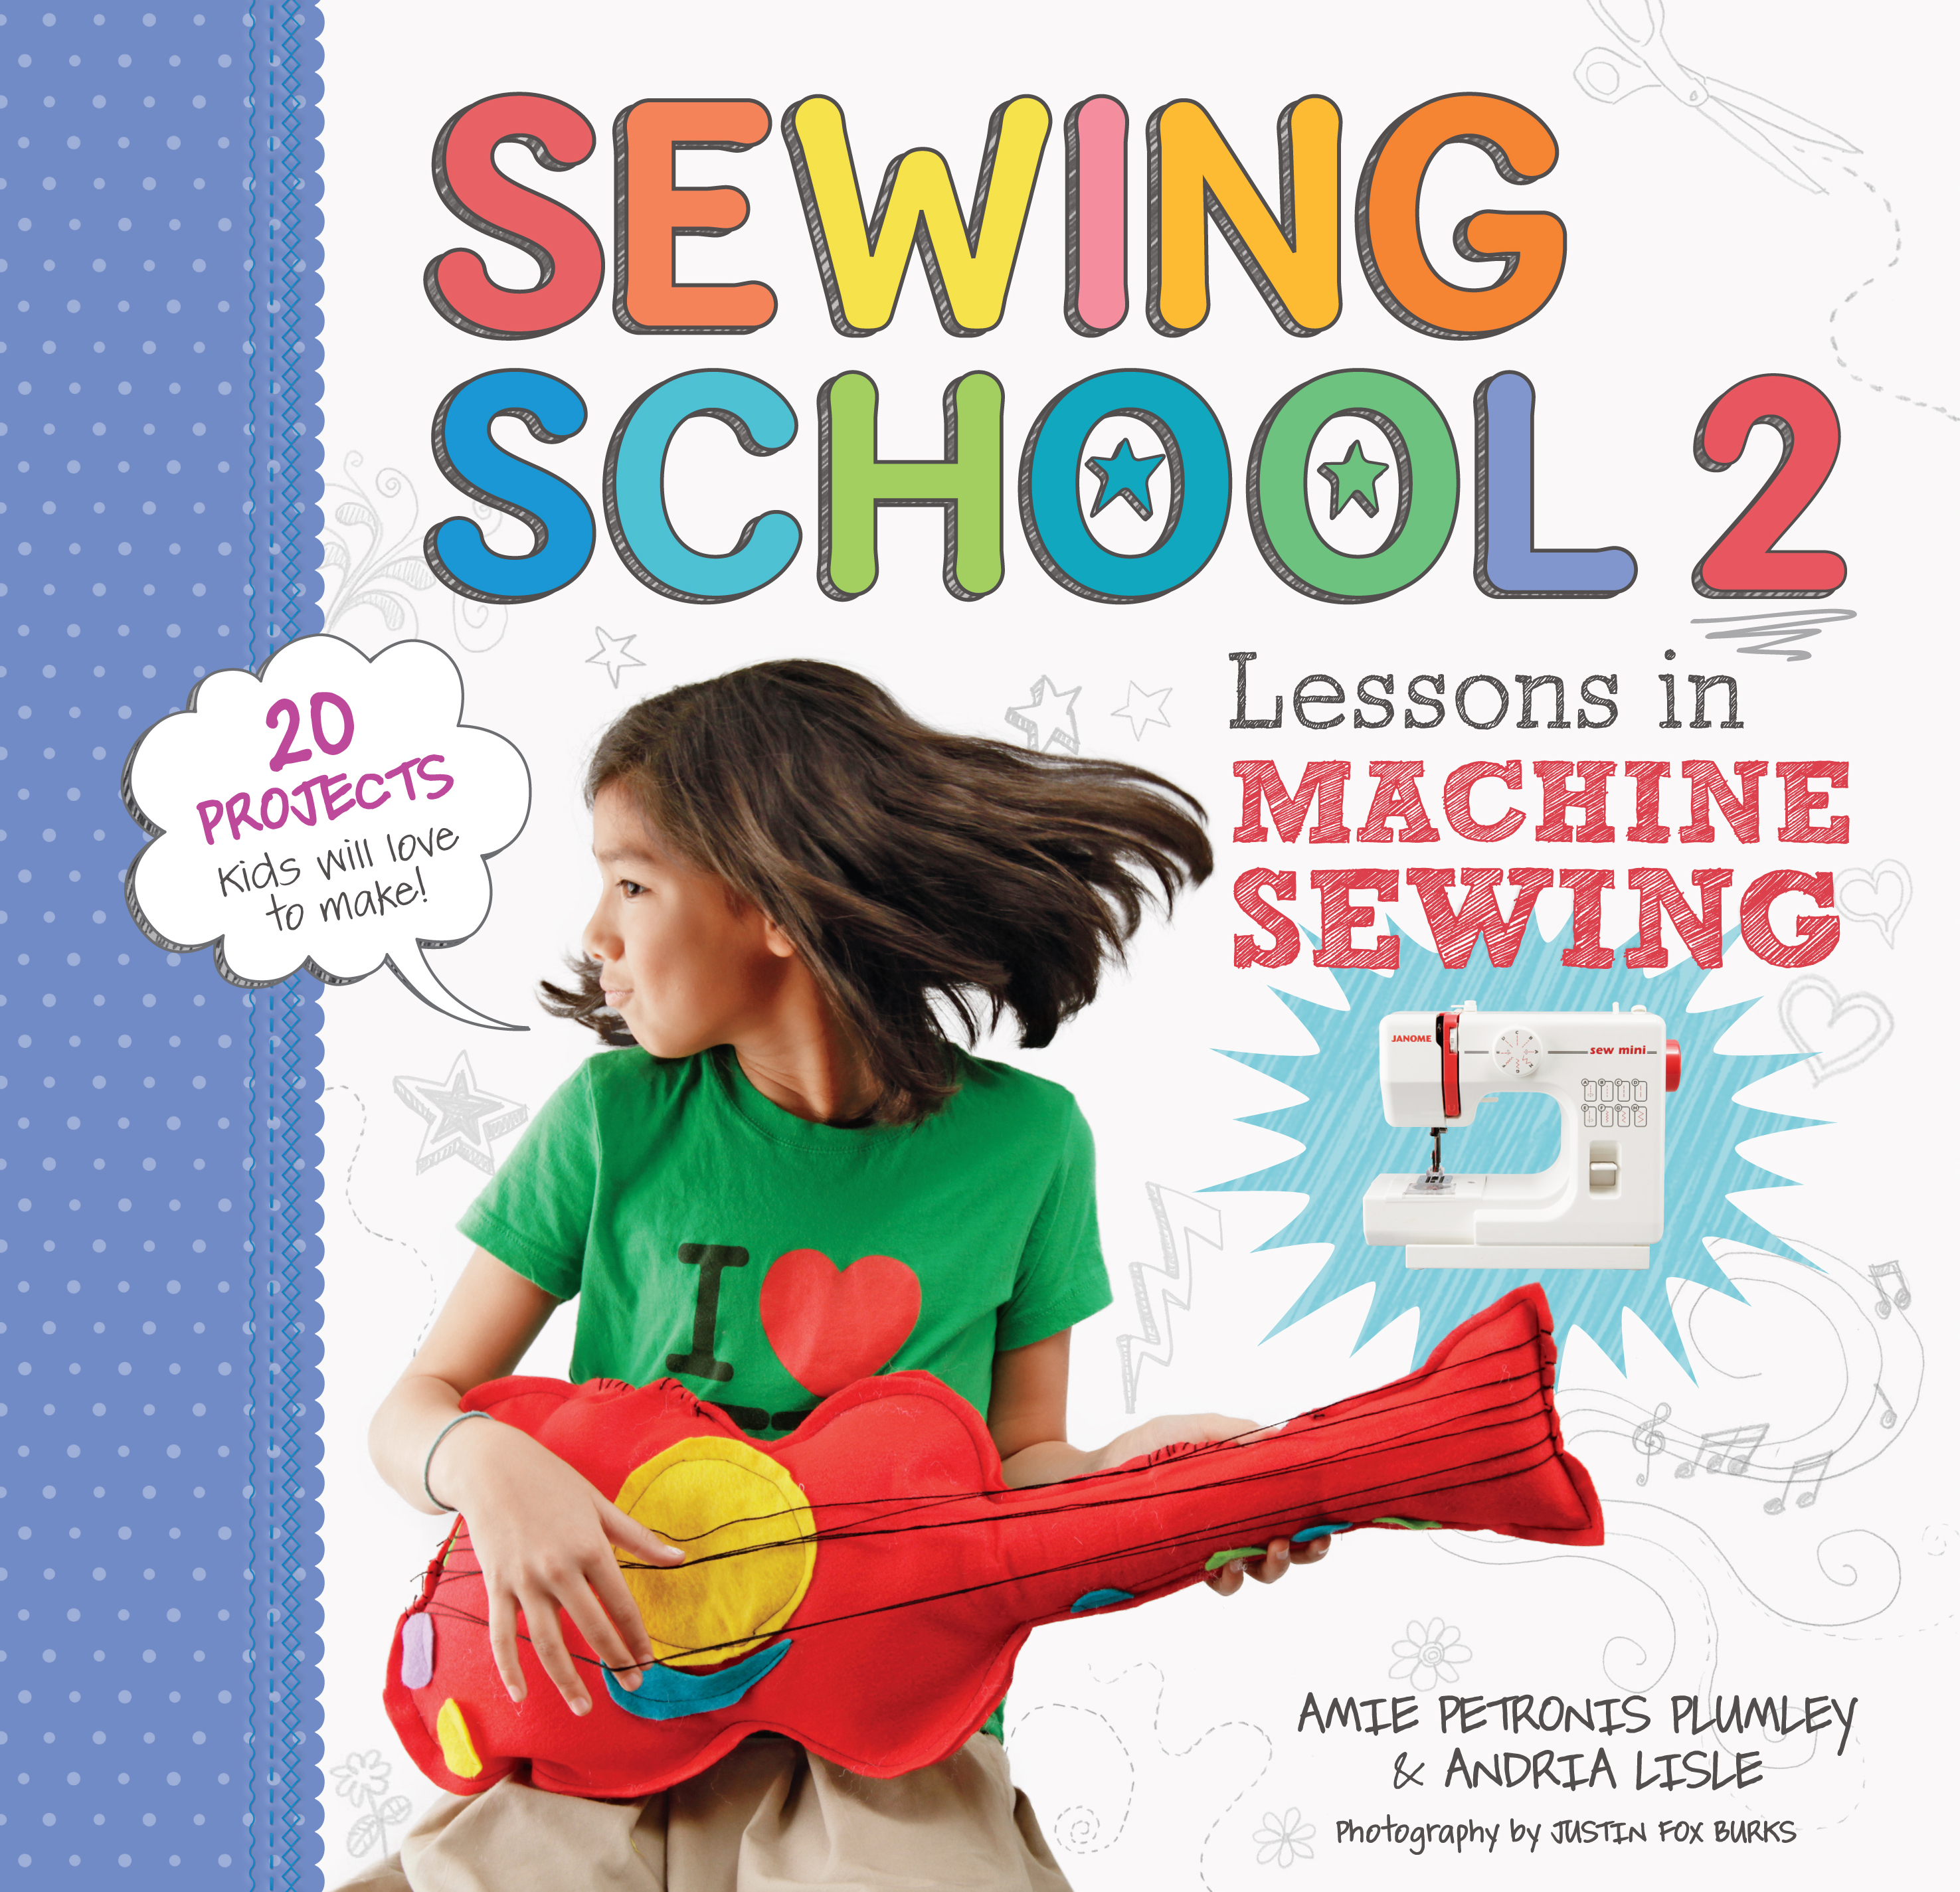 Sewing School <sup>®</sup> 2 Lessons in Machine Sewing; 20 Projects Kids Will Love to Make - Andria Lisle